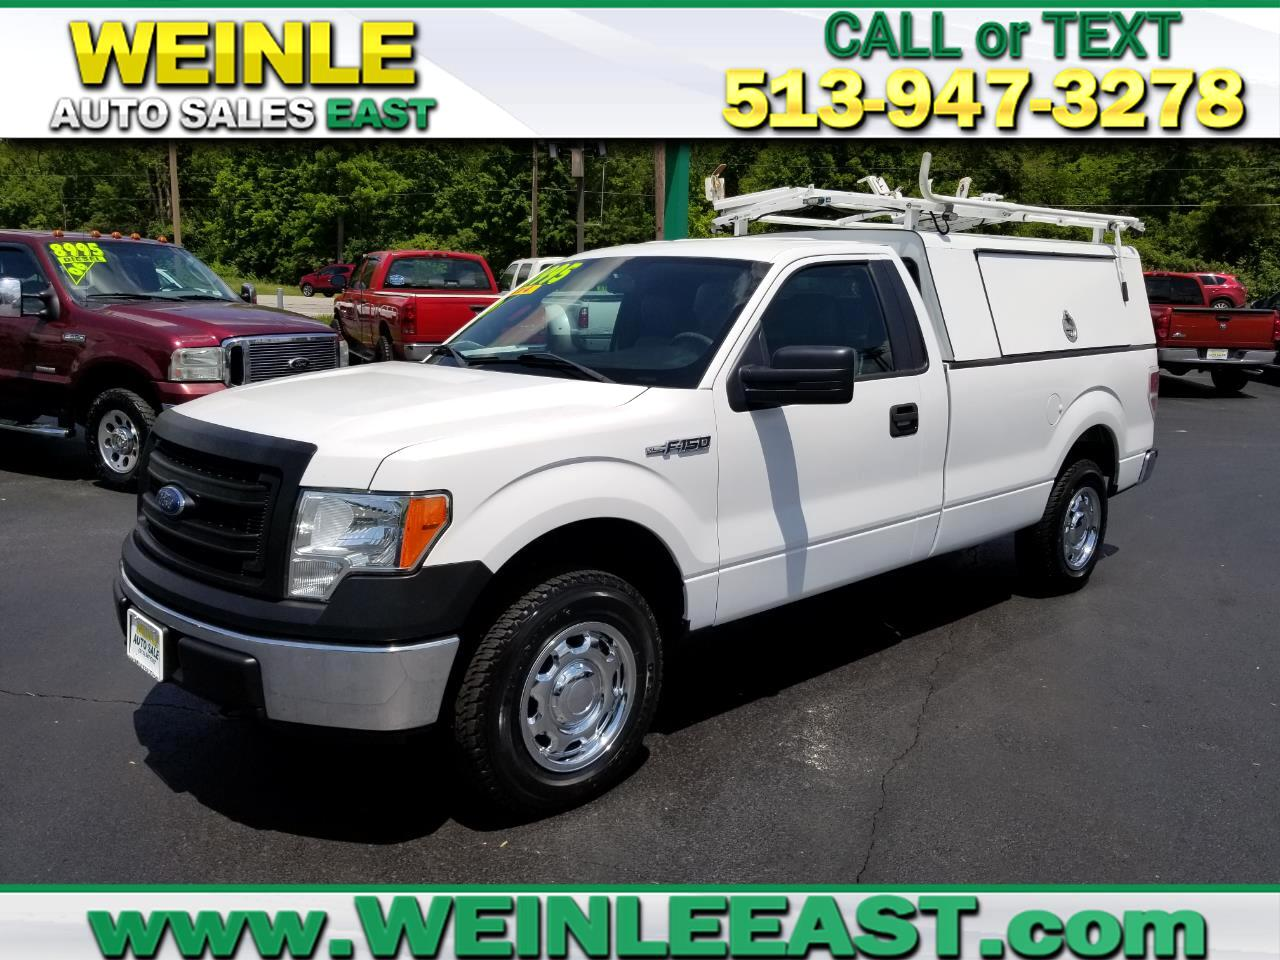 2013 Ford F-150 4WD REG CAB W/WORK BOX 8FT BED